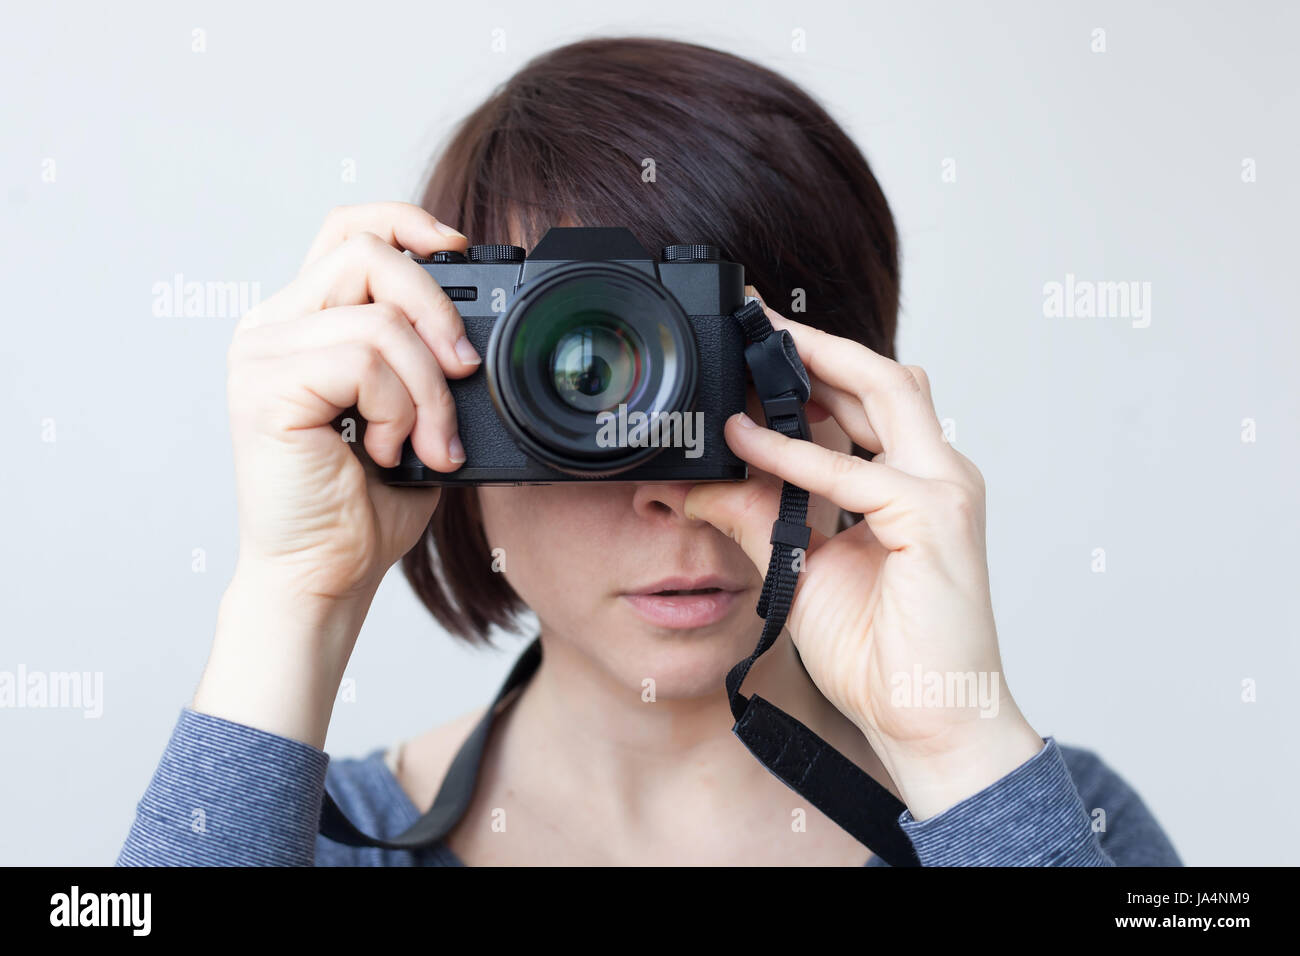 A girl is holding a camera by her face. The lens looks like a big eye. Hobby with photography Stock Photo